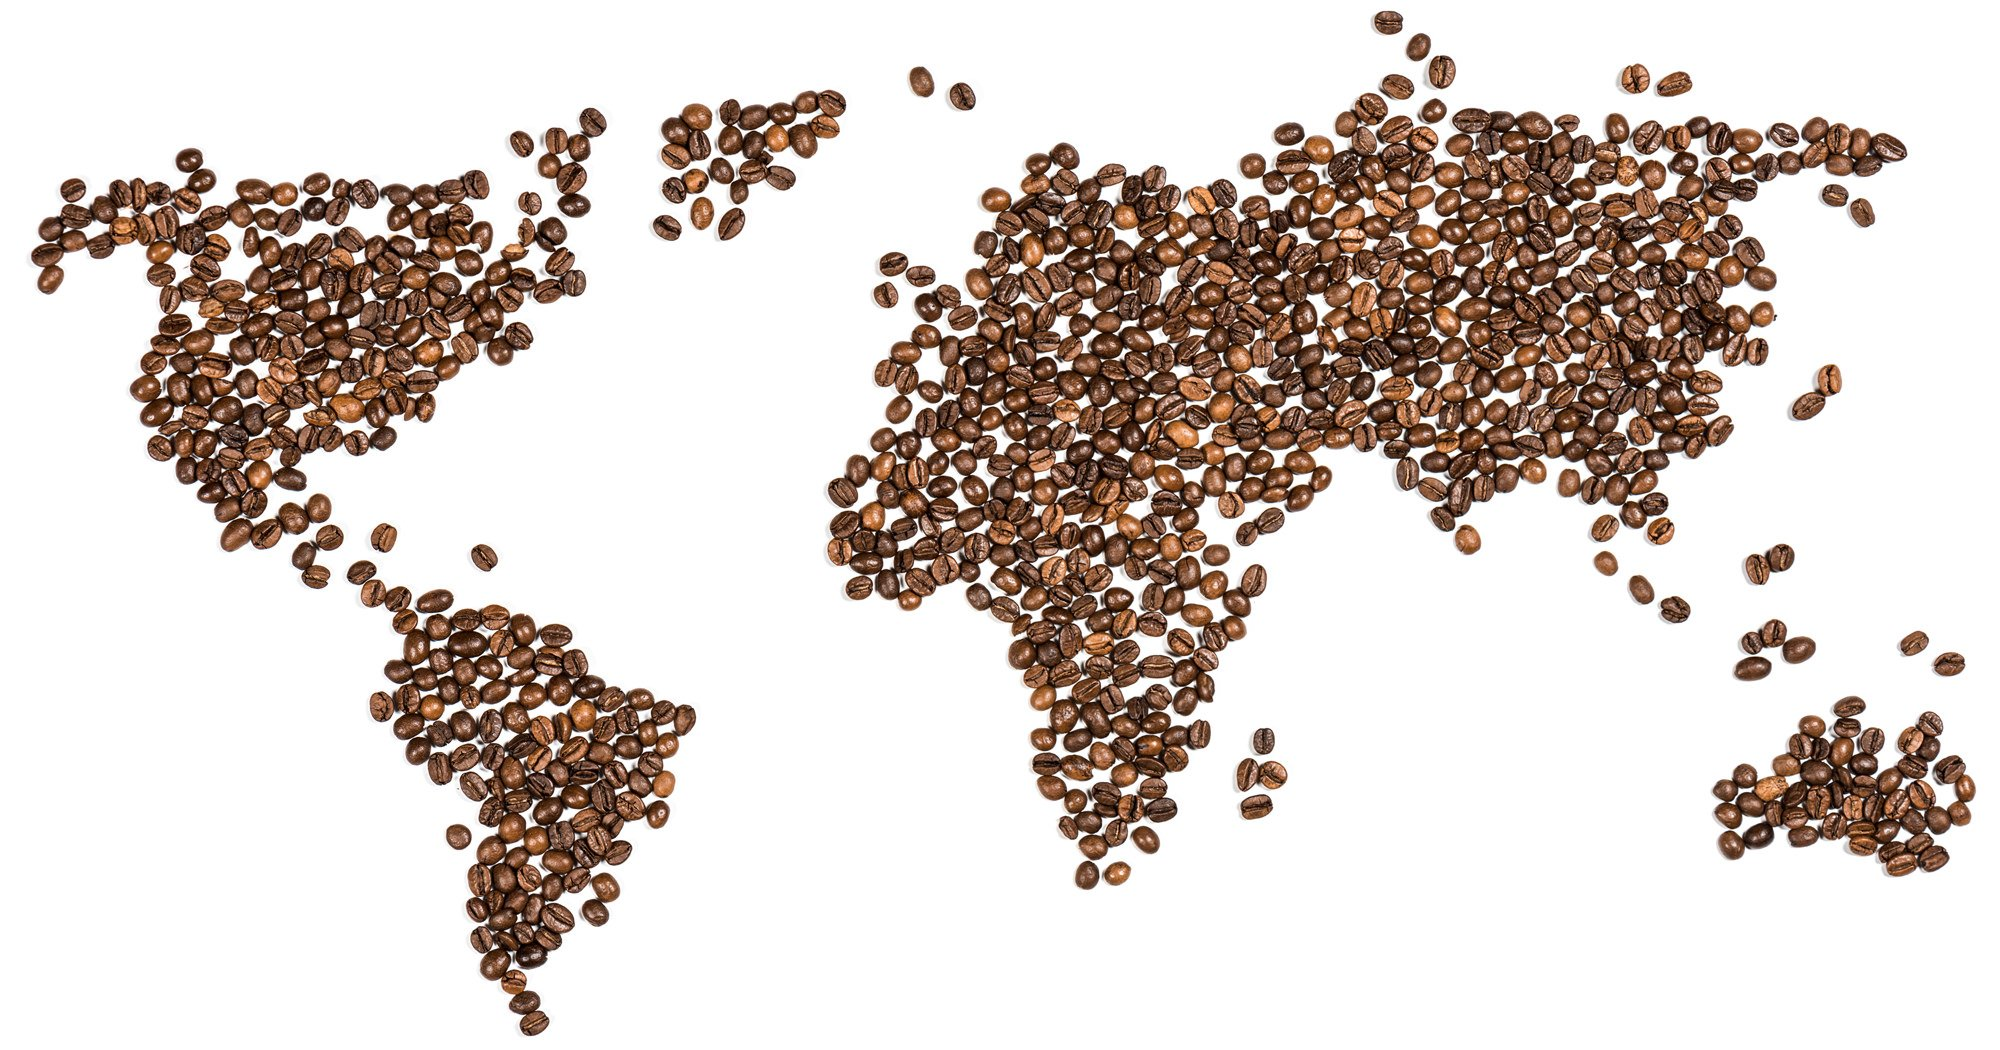 MAP OF WORLD MADE FROM COFFEE BEANS